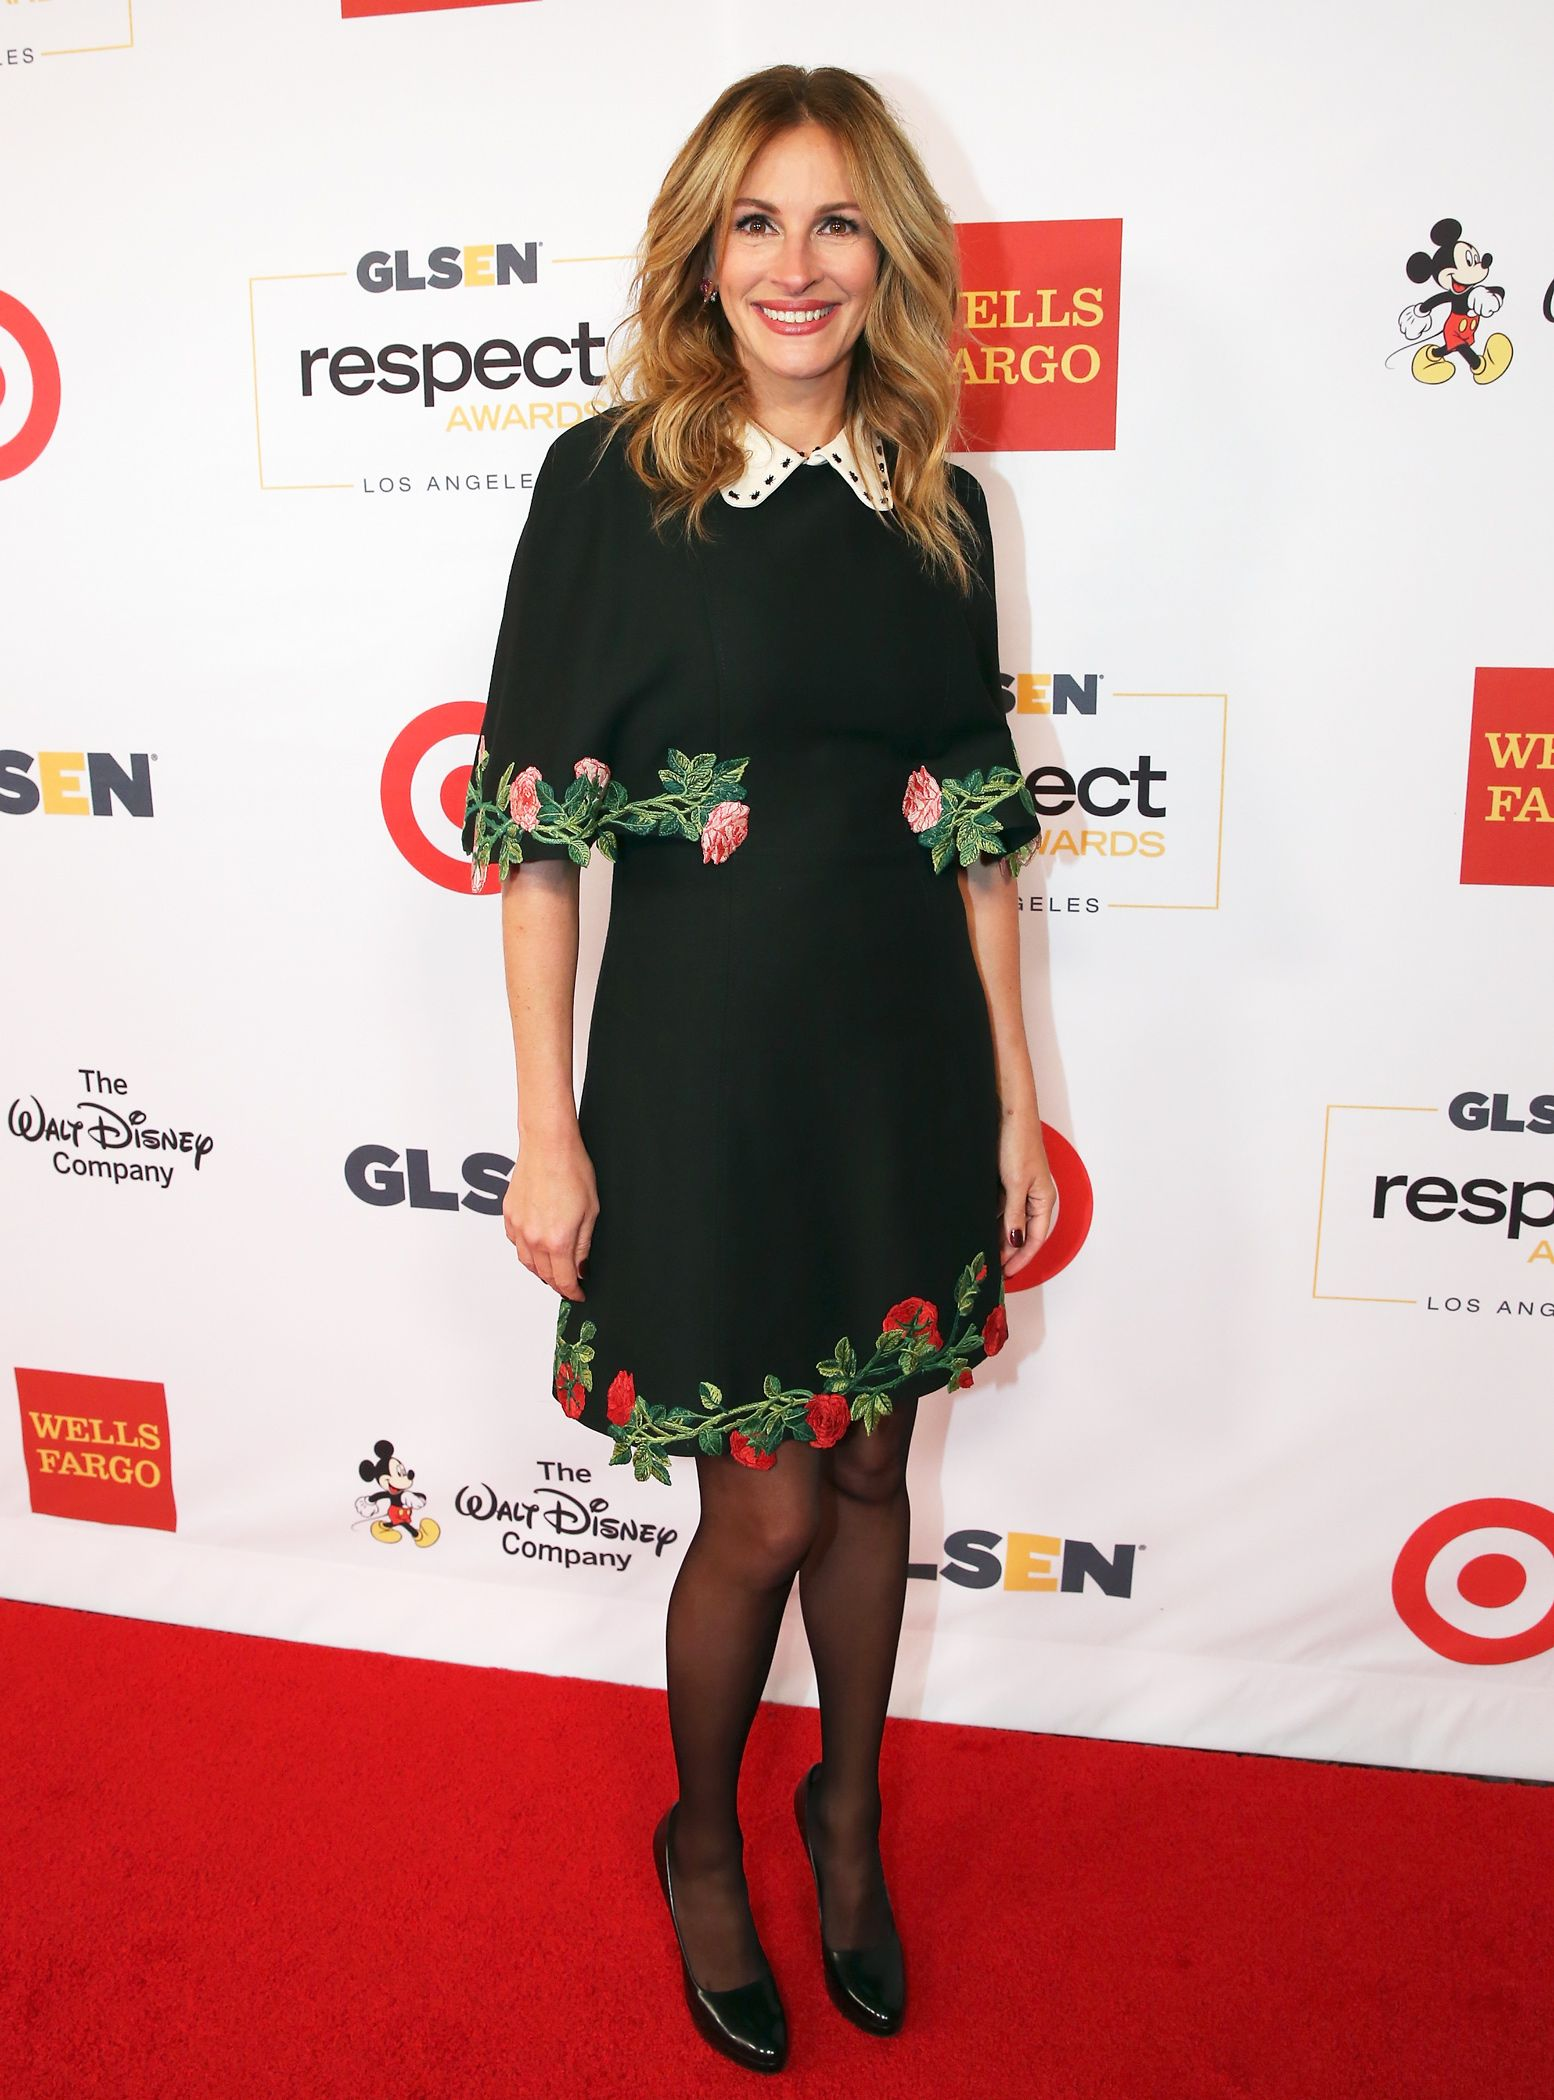 Julia Roberts Makes Roses Look Totally Chic On The Red Carpet Julia Roberts Style Embroidered Dress Fashion [ 2100 x 1554 Pixel ]